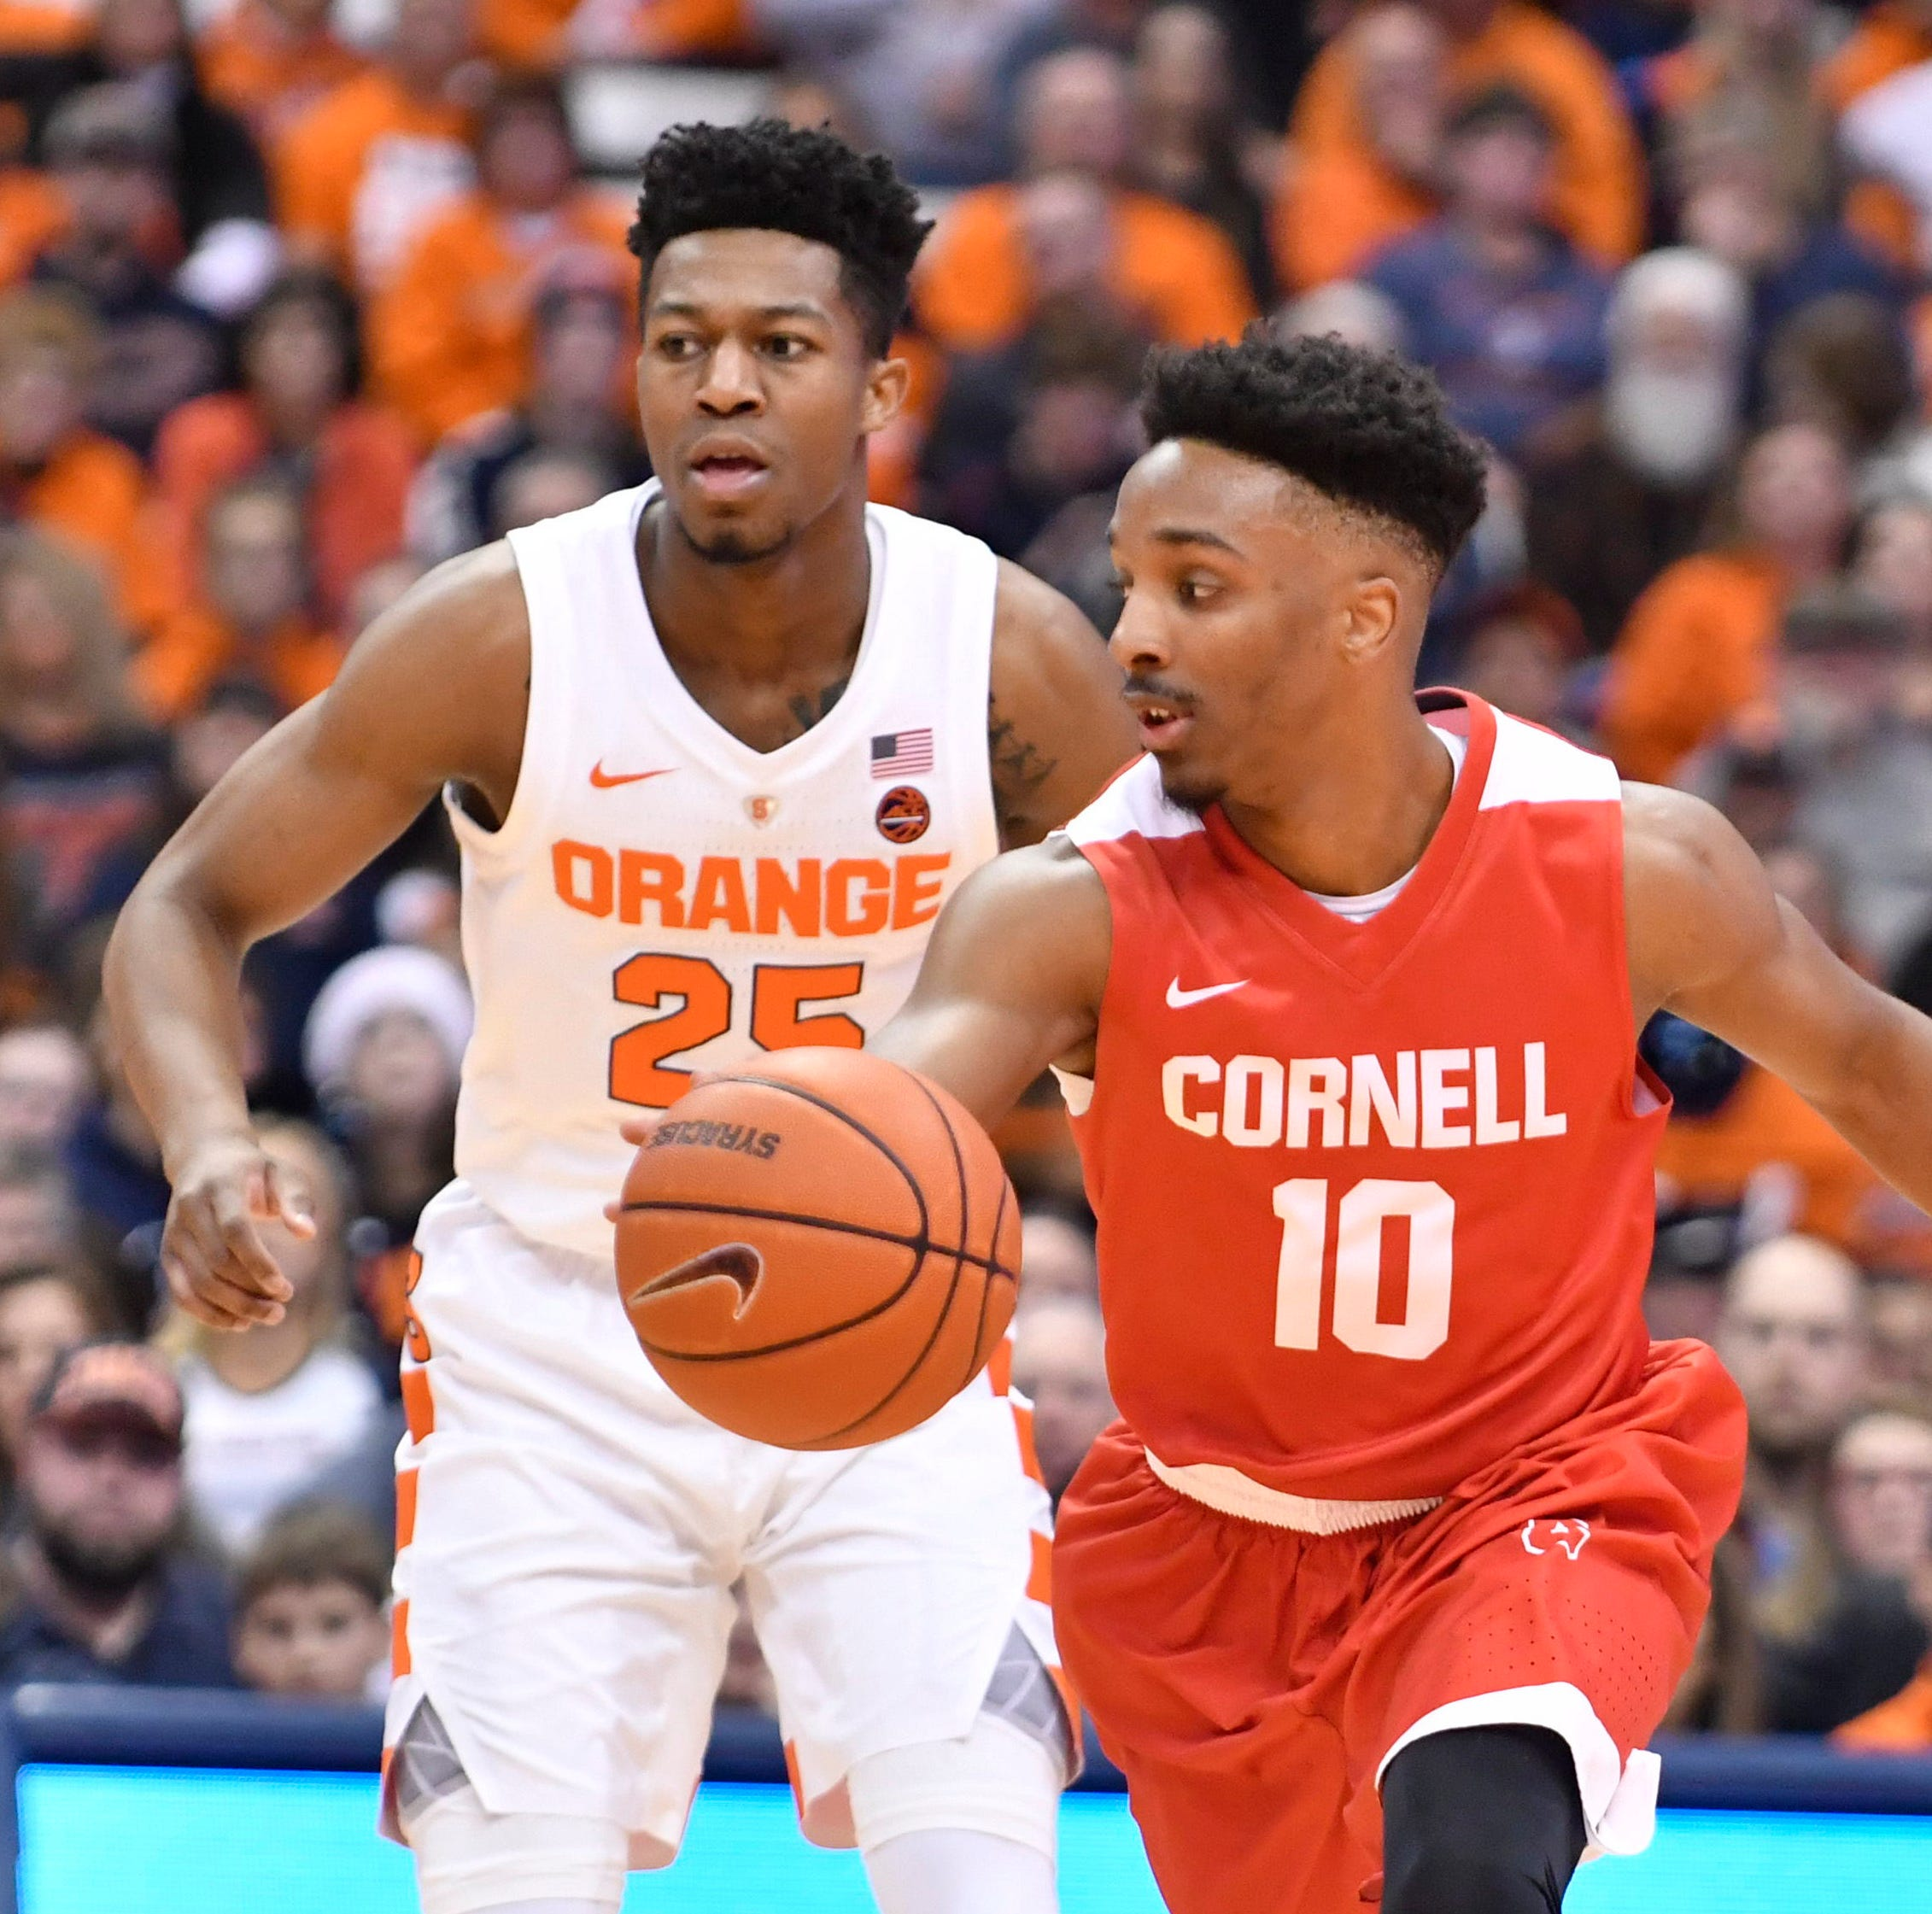 Syracuse vs. Cornell basketball: How to watch on TV, stream online